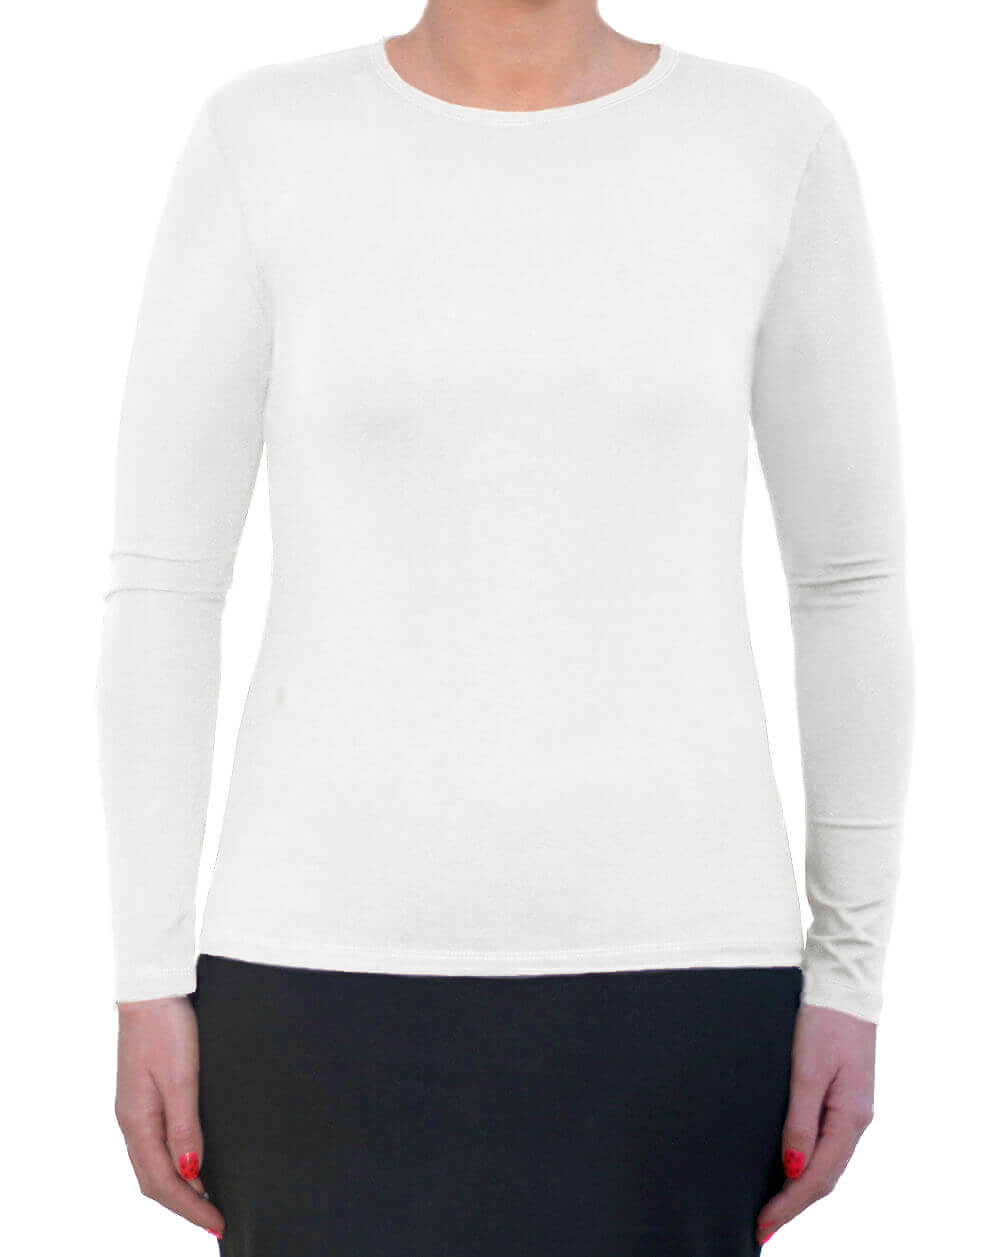 Women's Shell Top Long Sleeve